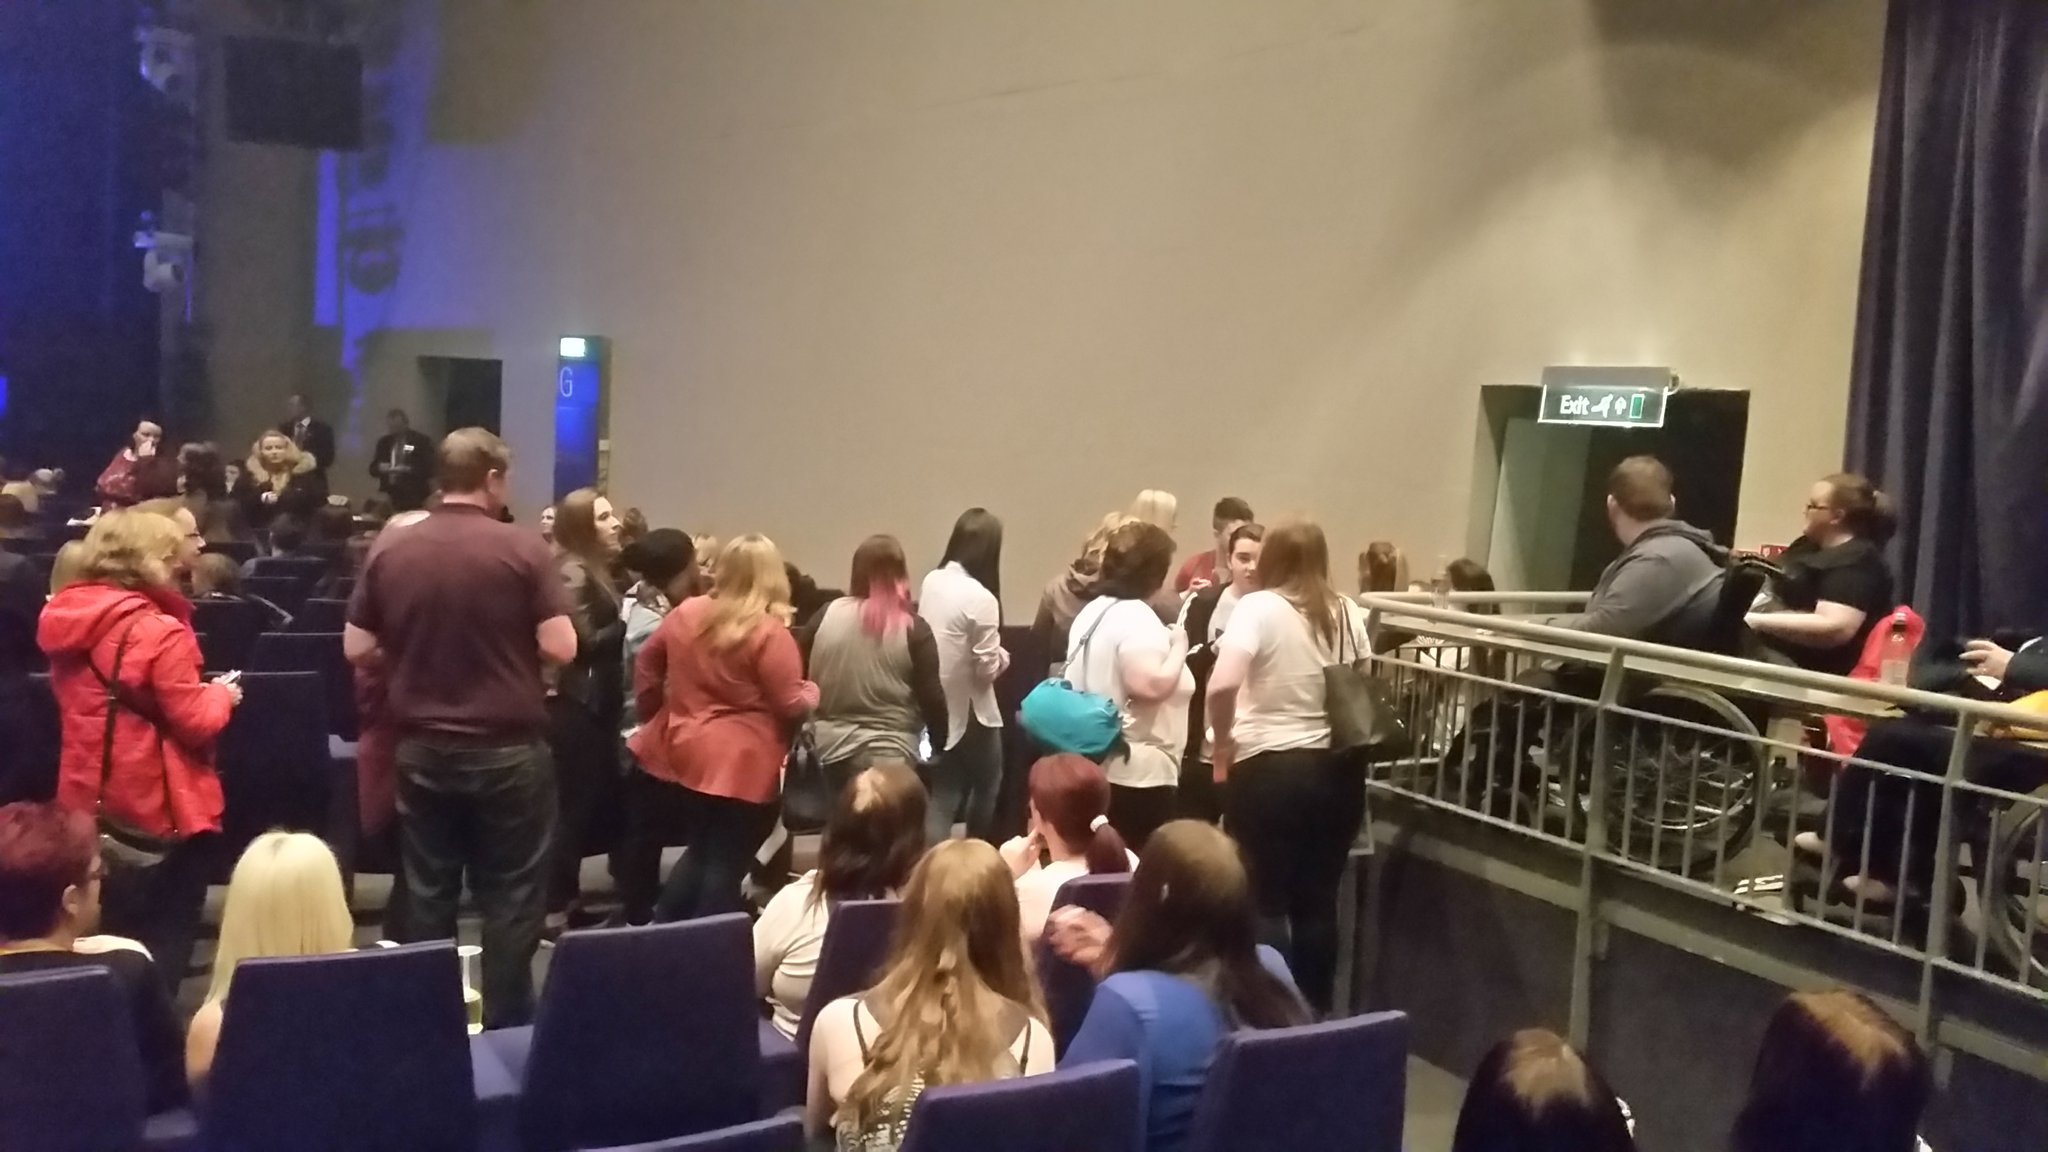 RT @LindayLoo62: @nickymcdonald1 U were a total star tonight Nicky the queue for pics with u went round the whole Clyde Auditorium 😃 https:…